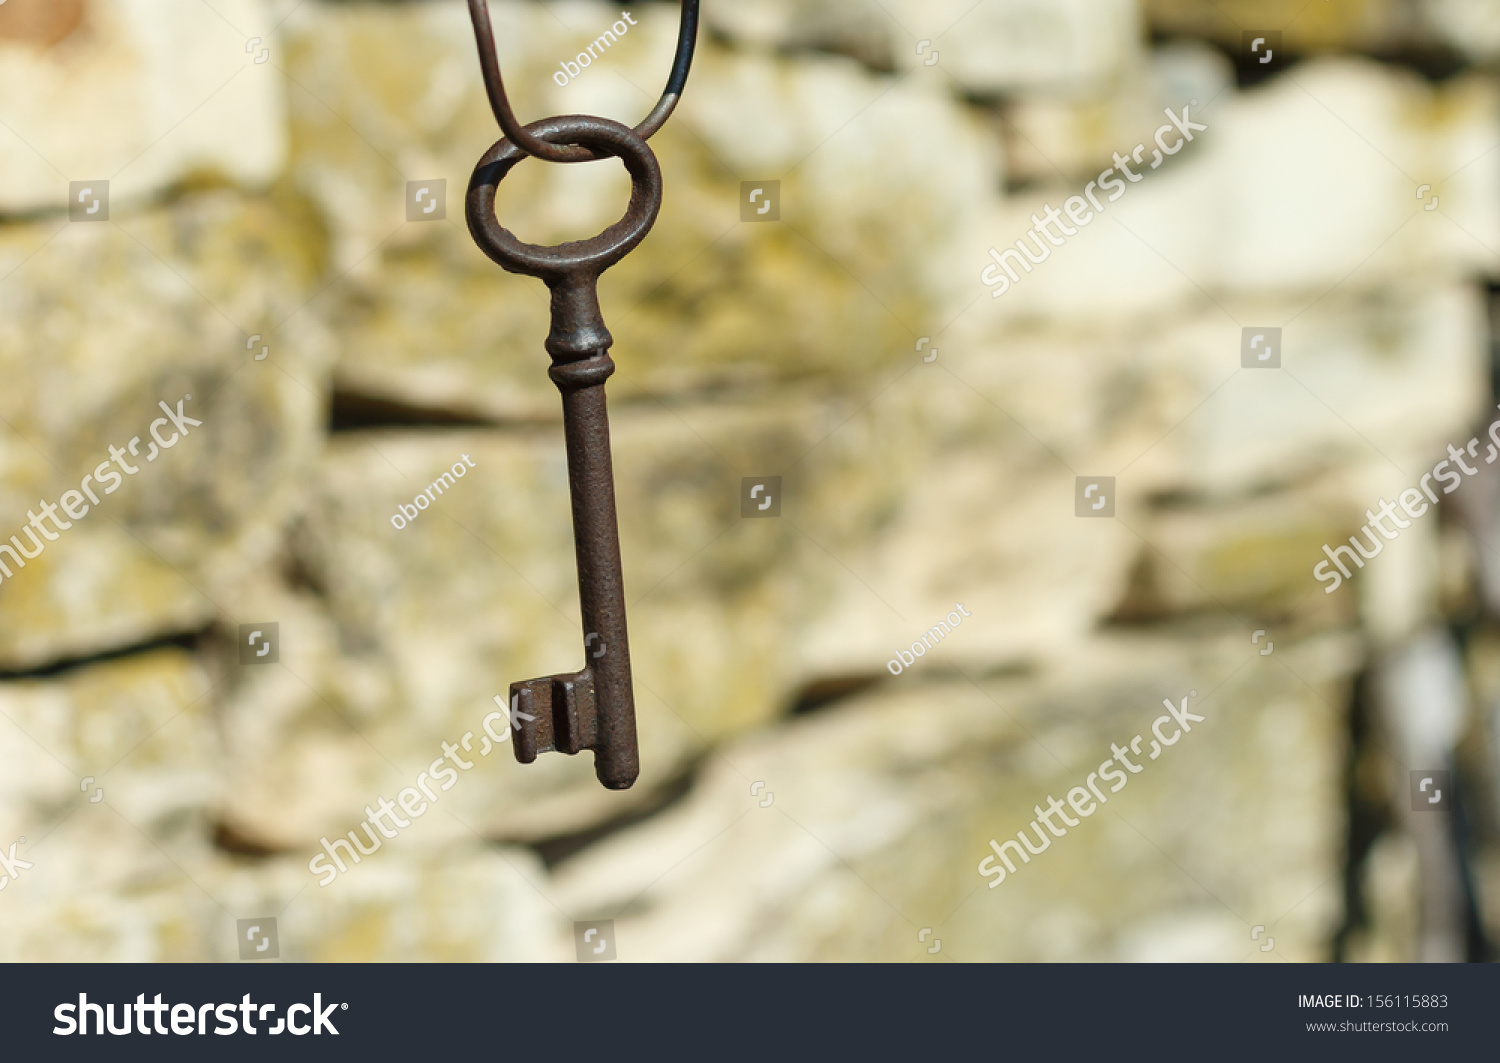 Old Key Hanging On Stone Wall Stock Photo (Edit Now) 156115883 ...